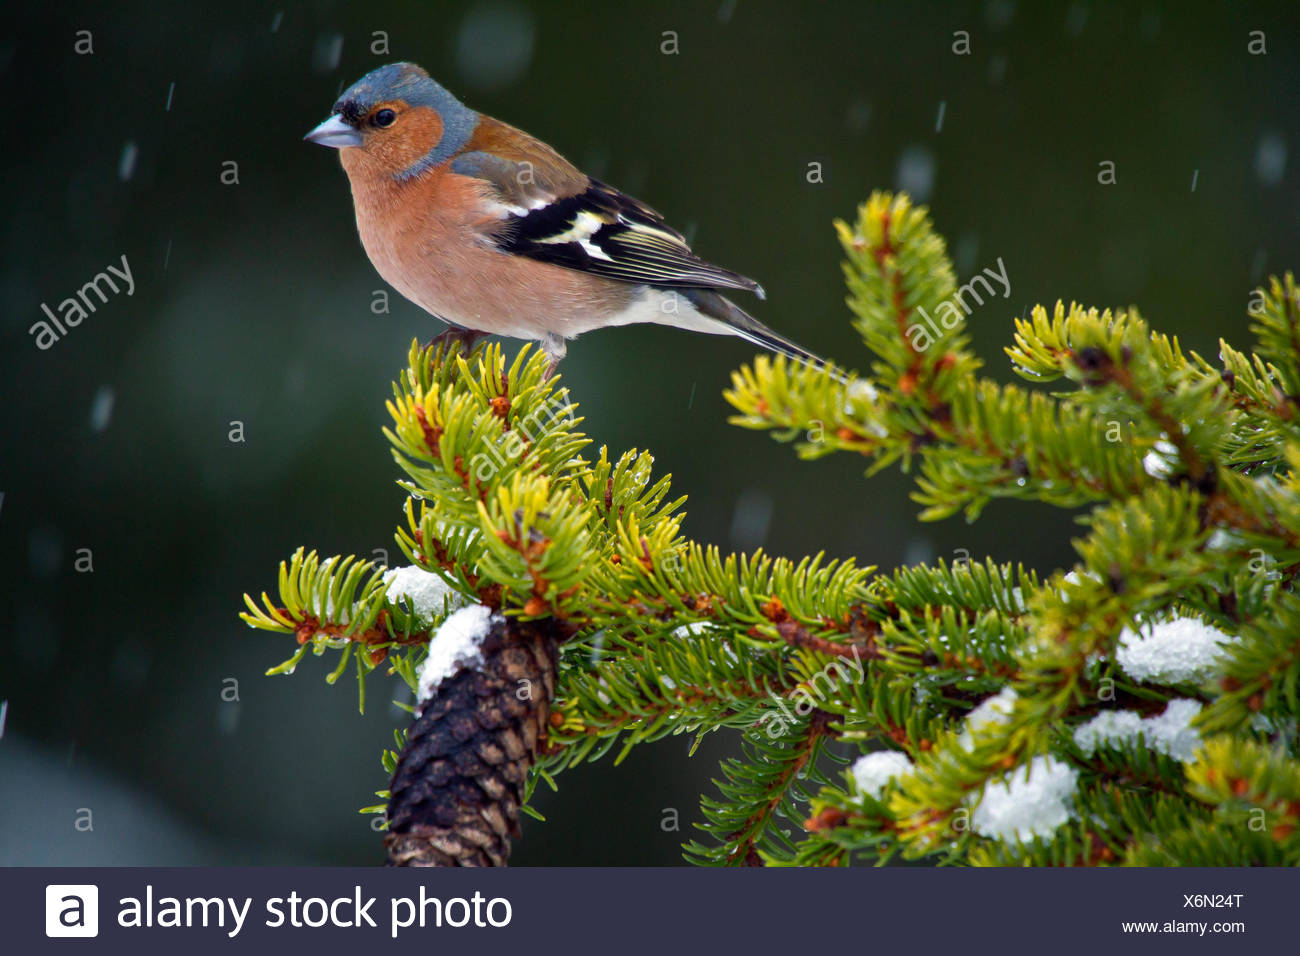 chaffinch (Fringilla coelebs), siting on a spruce branch, Sweden, Hamra National Park - Stock Image